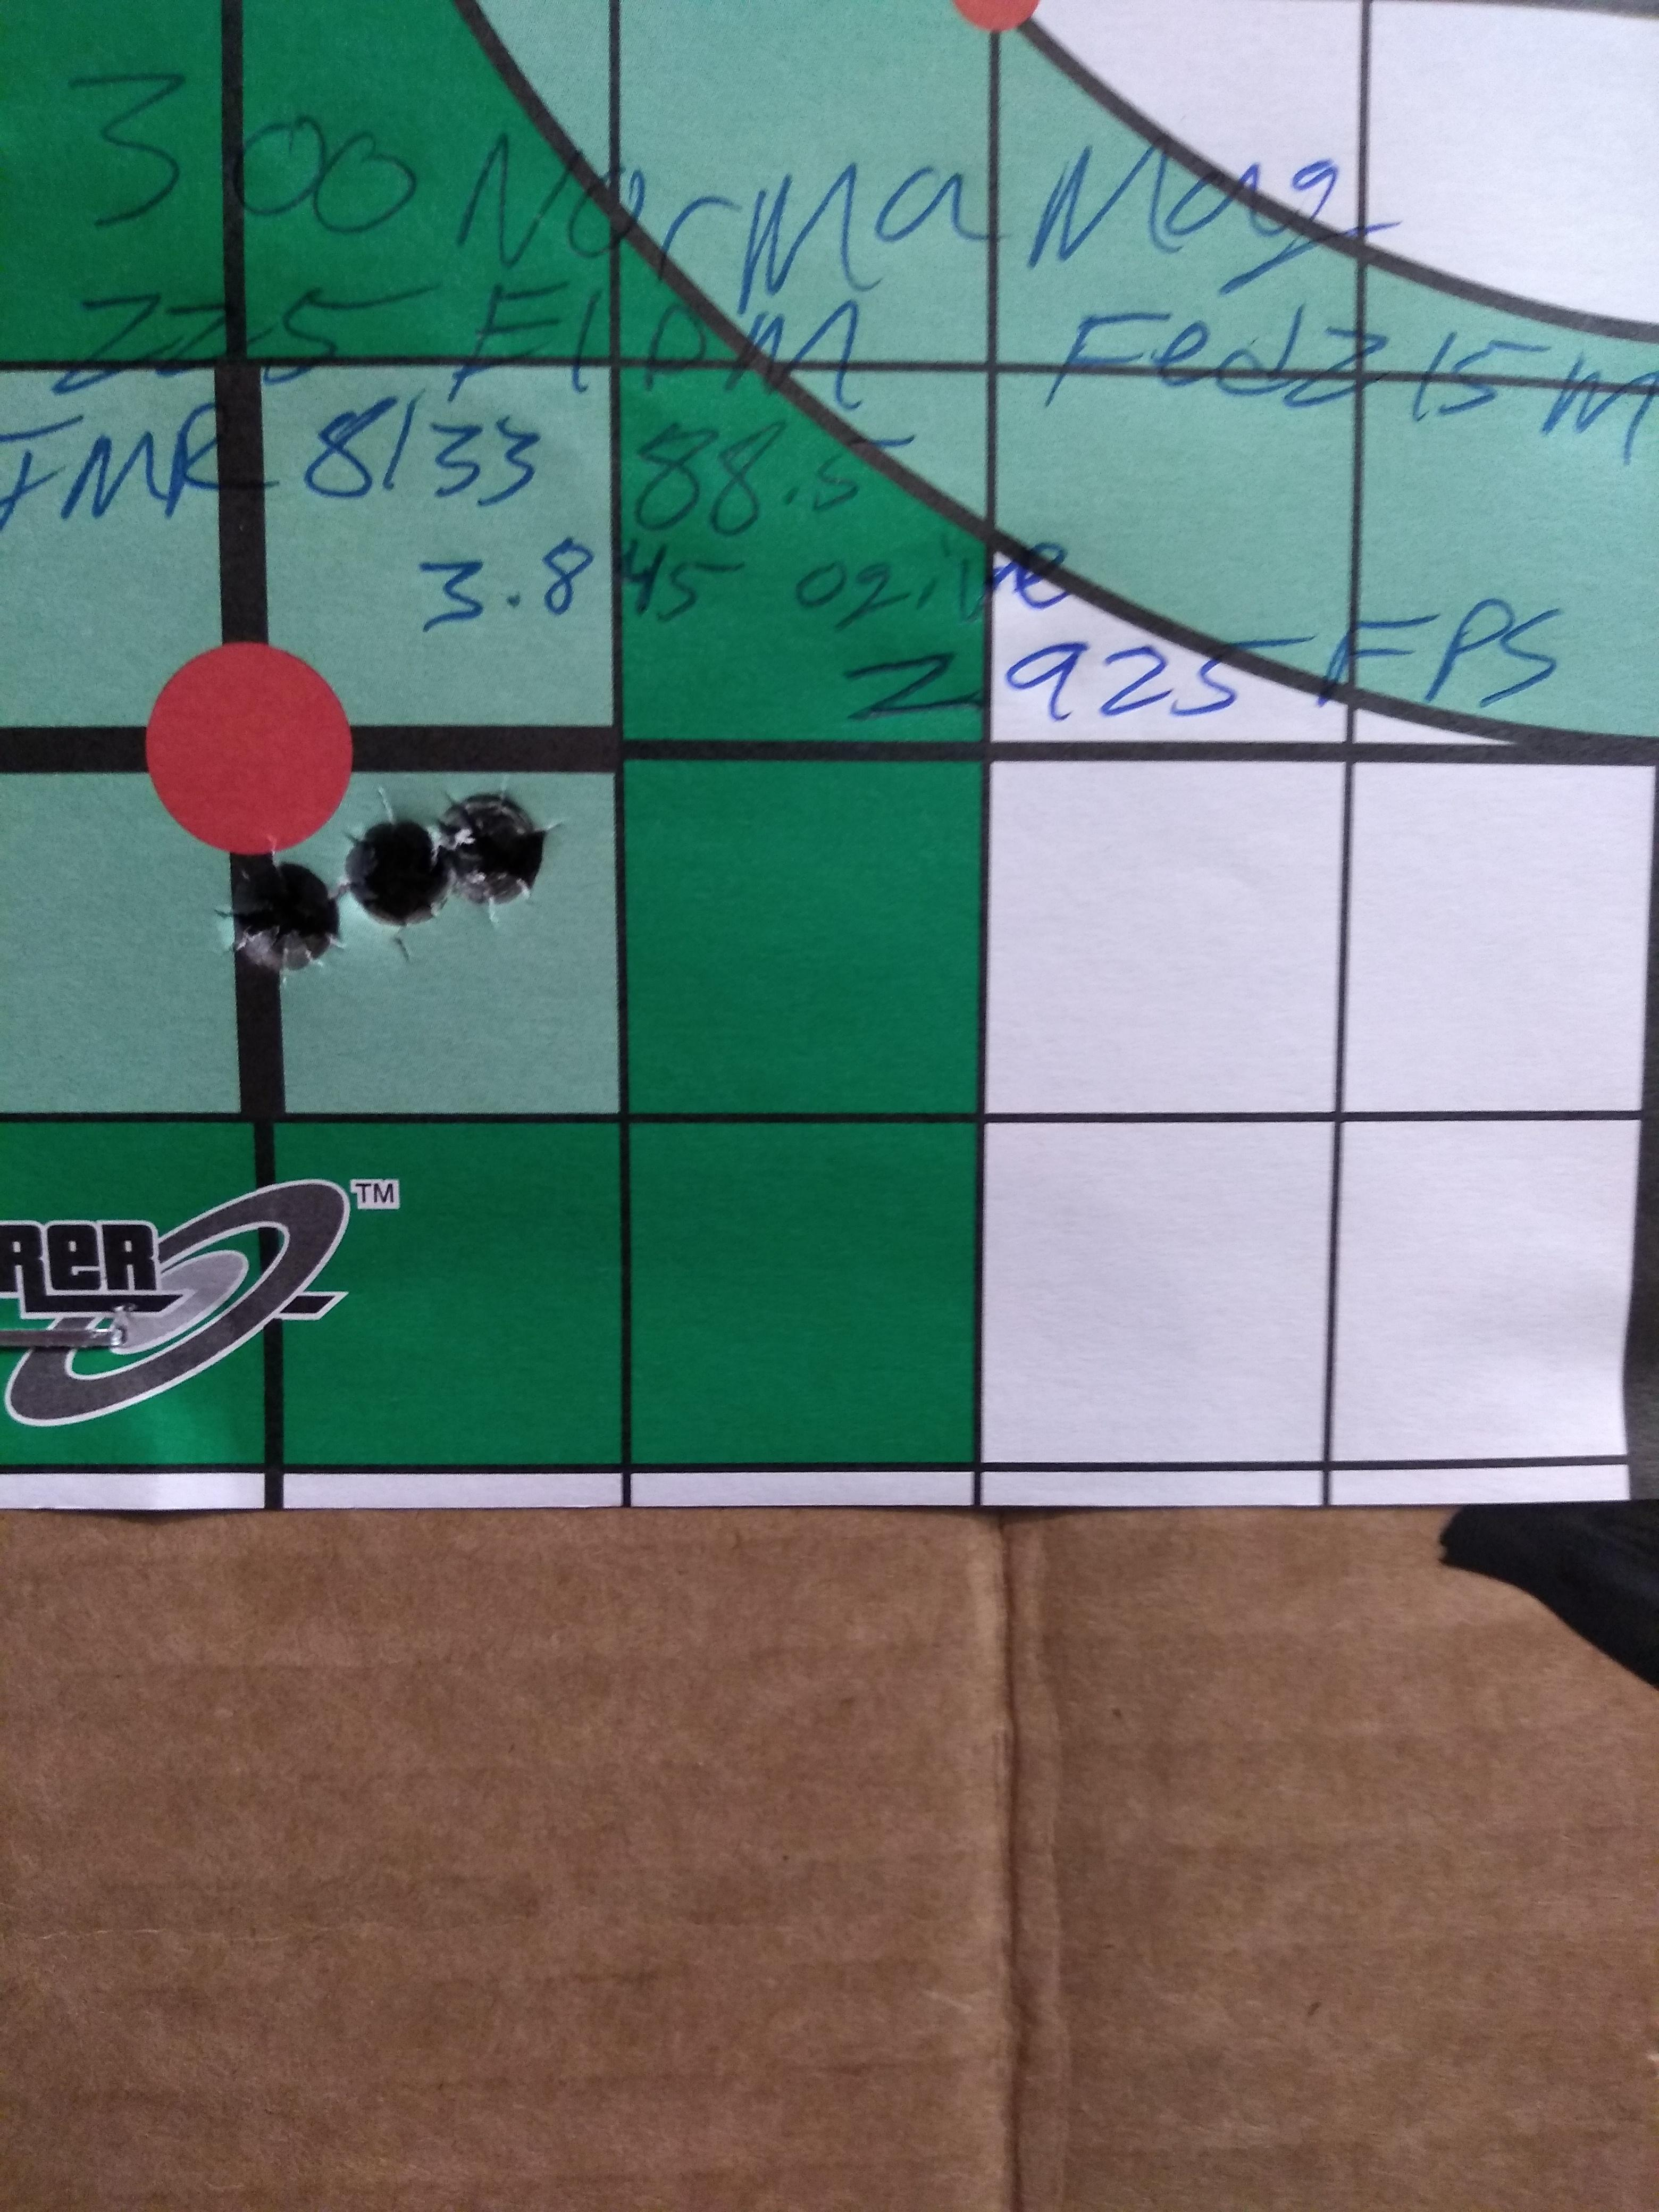 Who's successfuly using imr 8133? | Page 7 | Long Range Hunting Forum